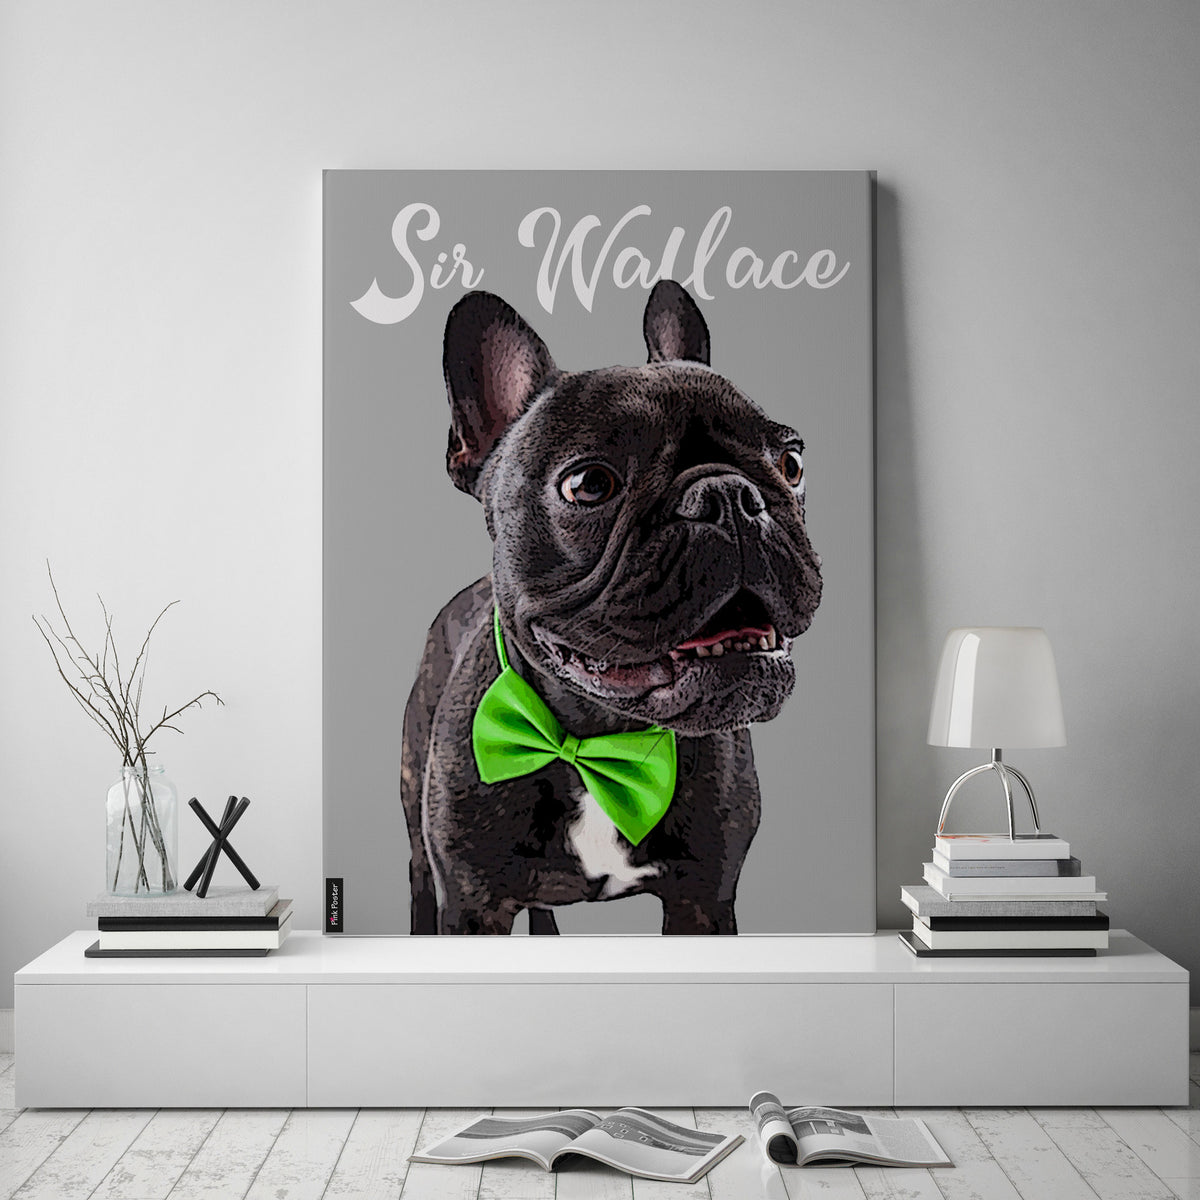 Dog poster - This is a dog art print of French bulldog on canvas